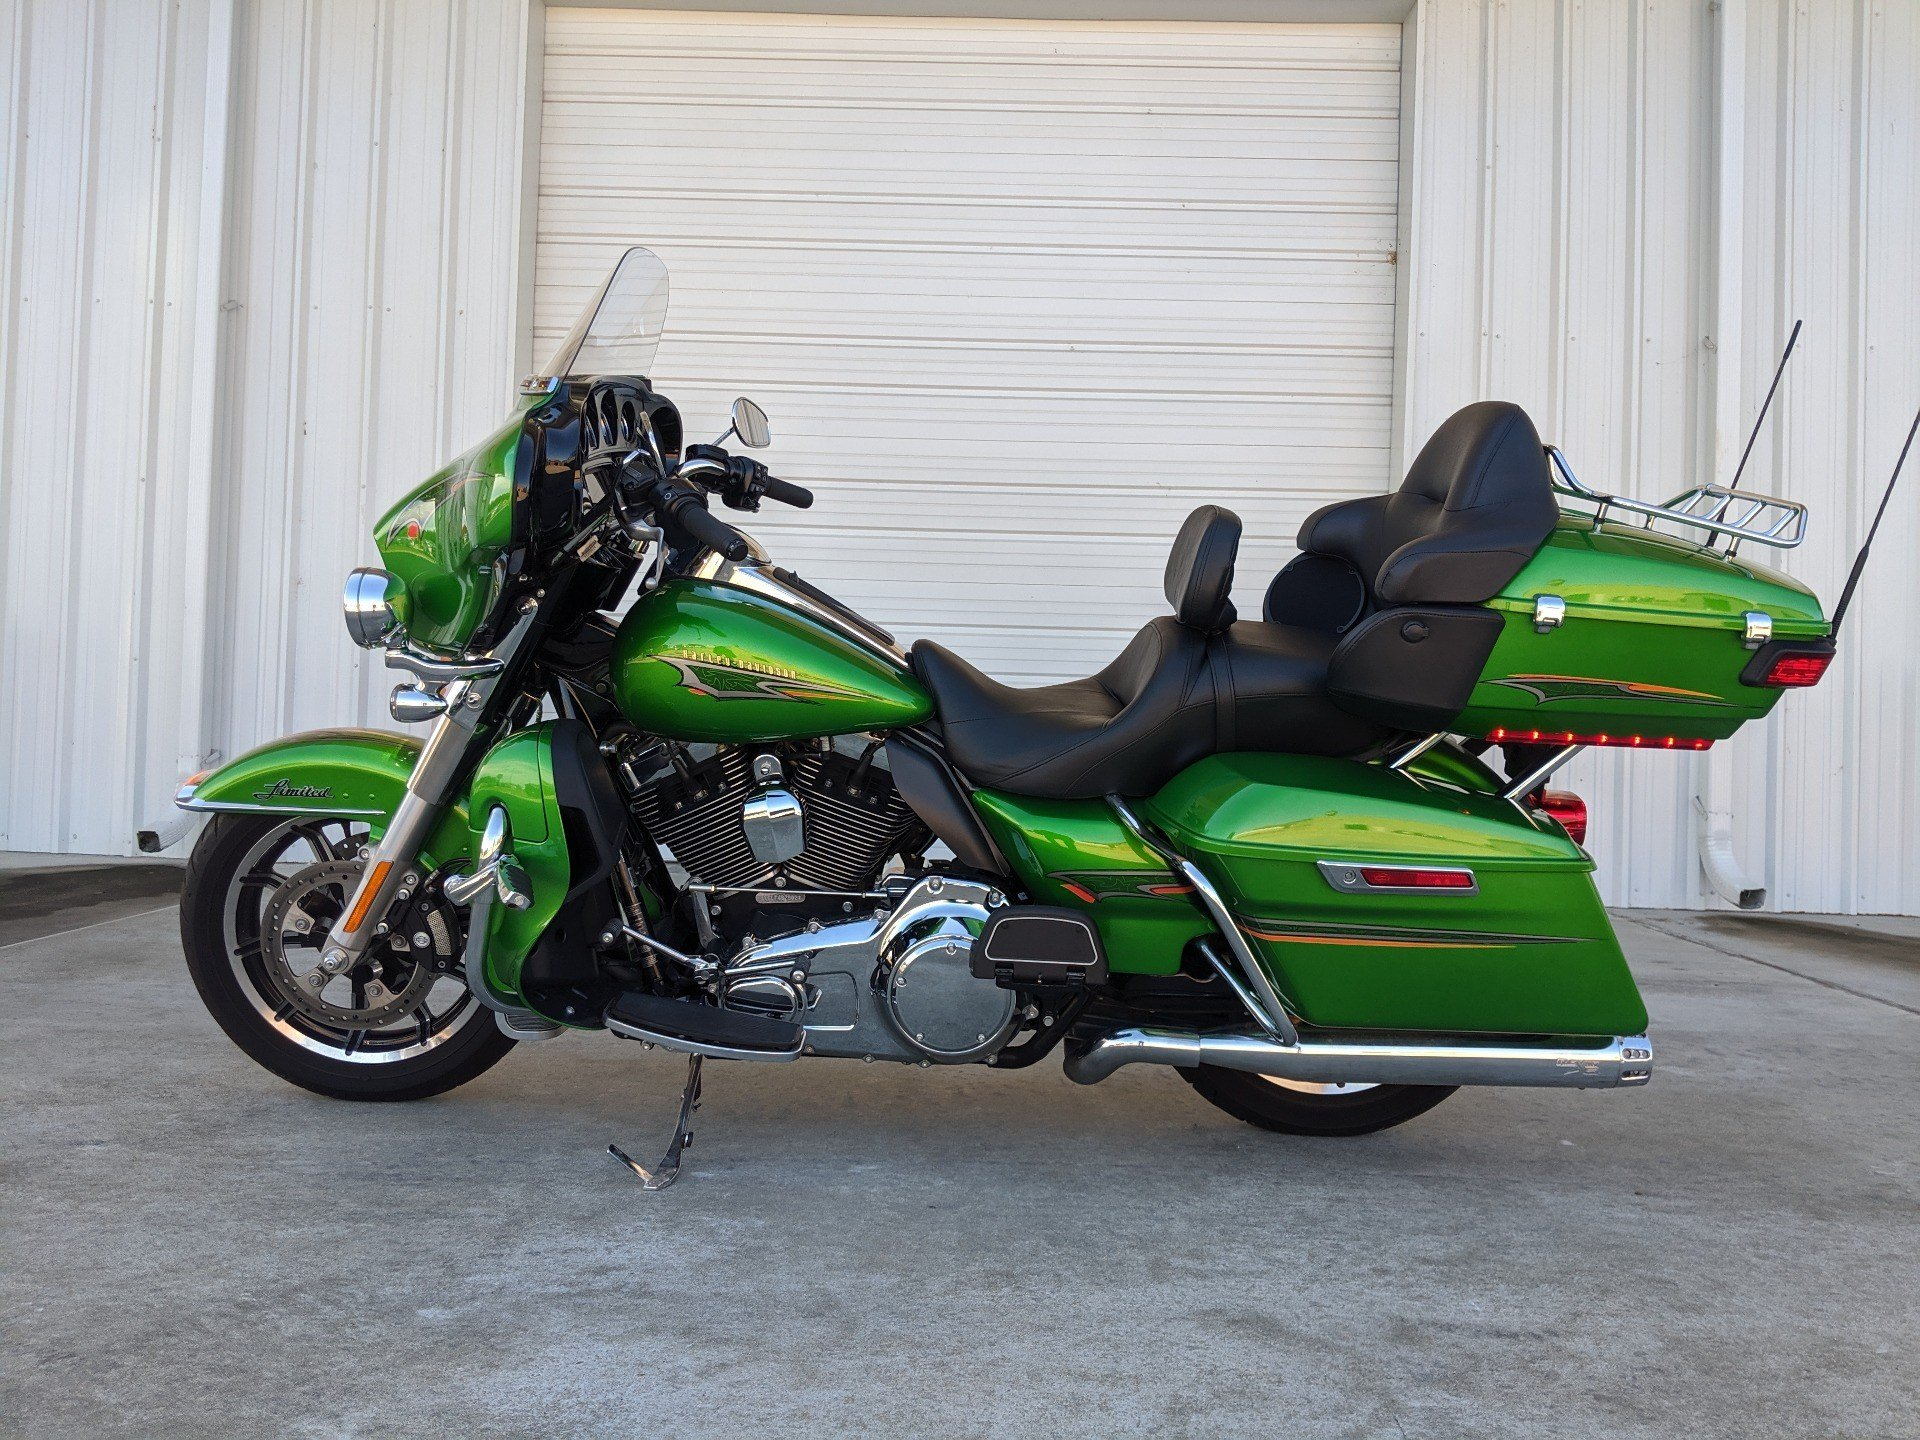 2015 Harley-Davidson Ultra Limited in Monroe, Louisiana - Photo 2